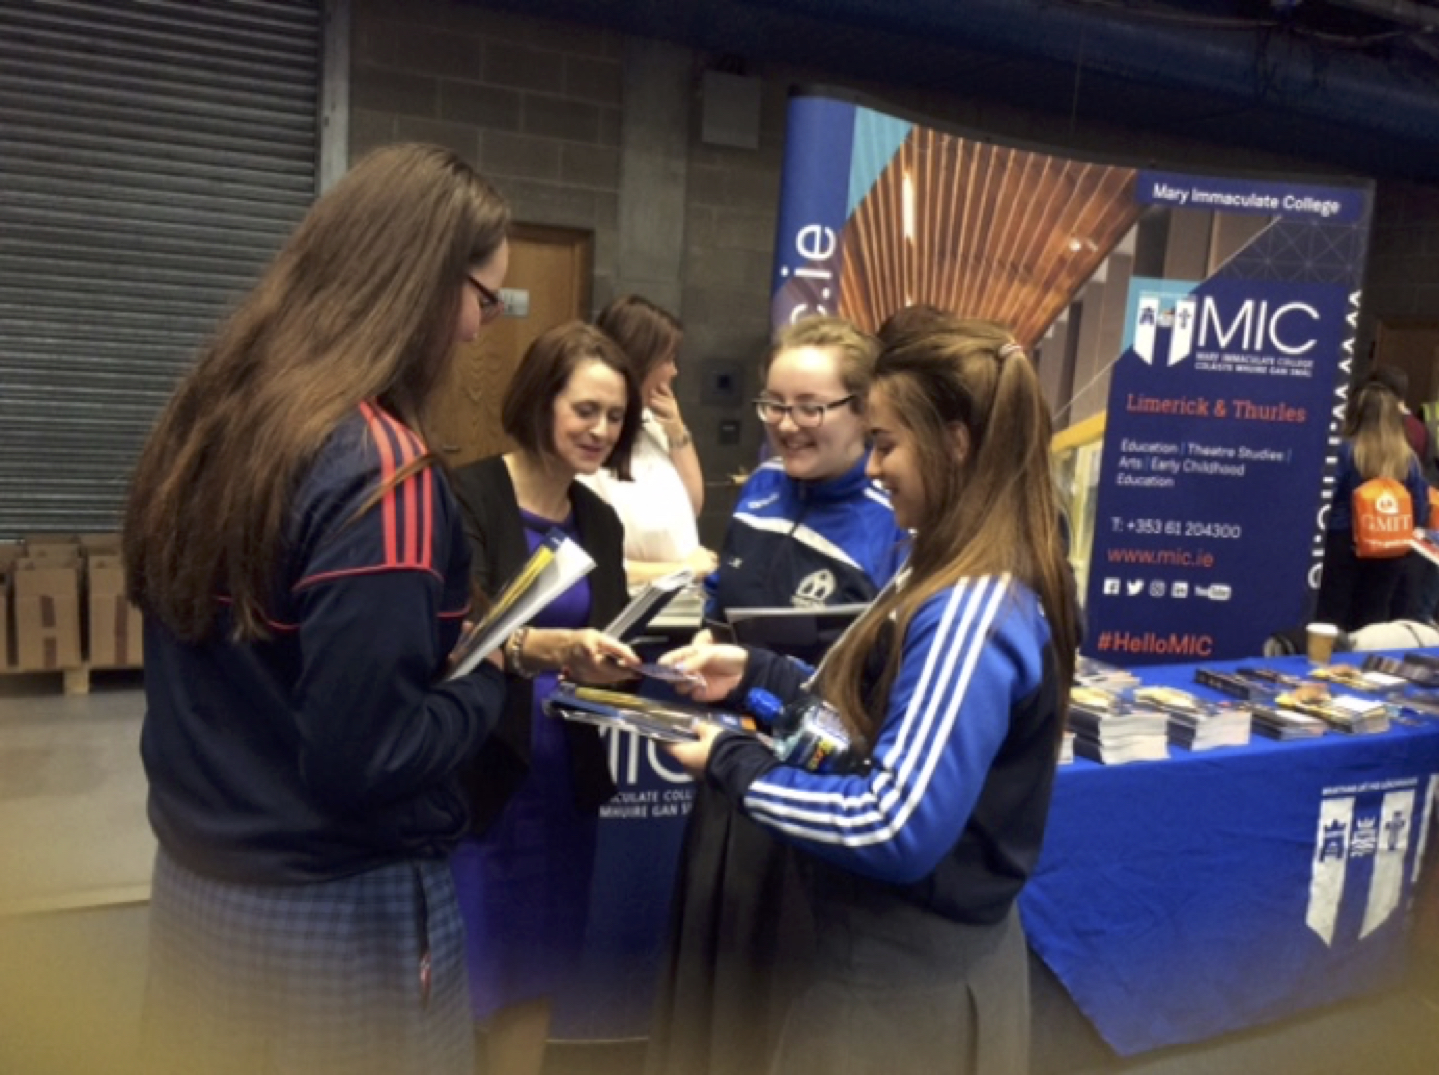 Sept 2017: Desmond College (newcastle west) Post Primary Leaving Certificate Students, getting information at the Career's Exhibition at the University of Limerick